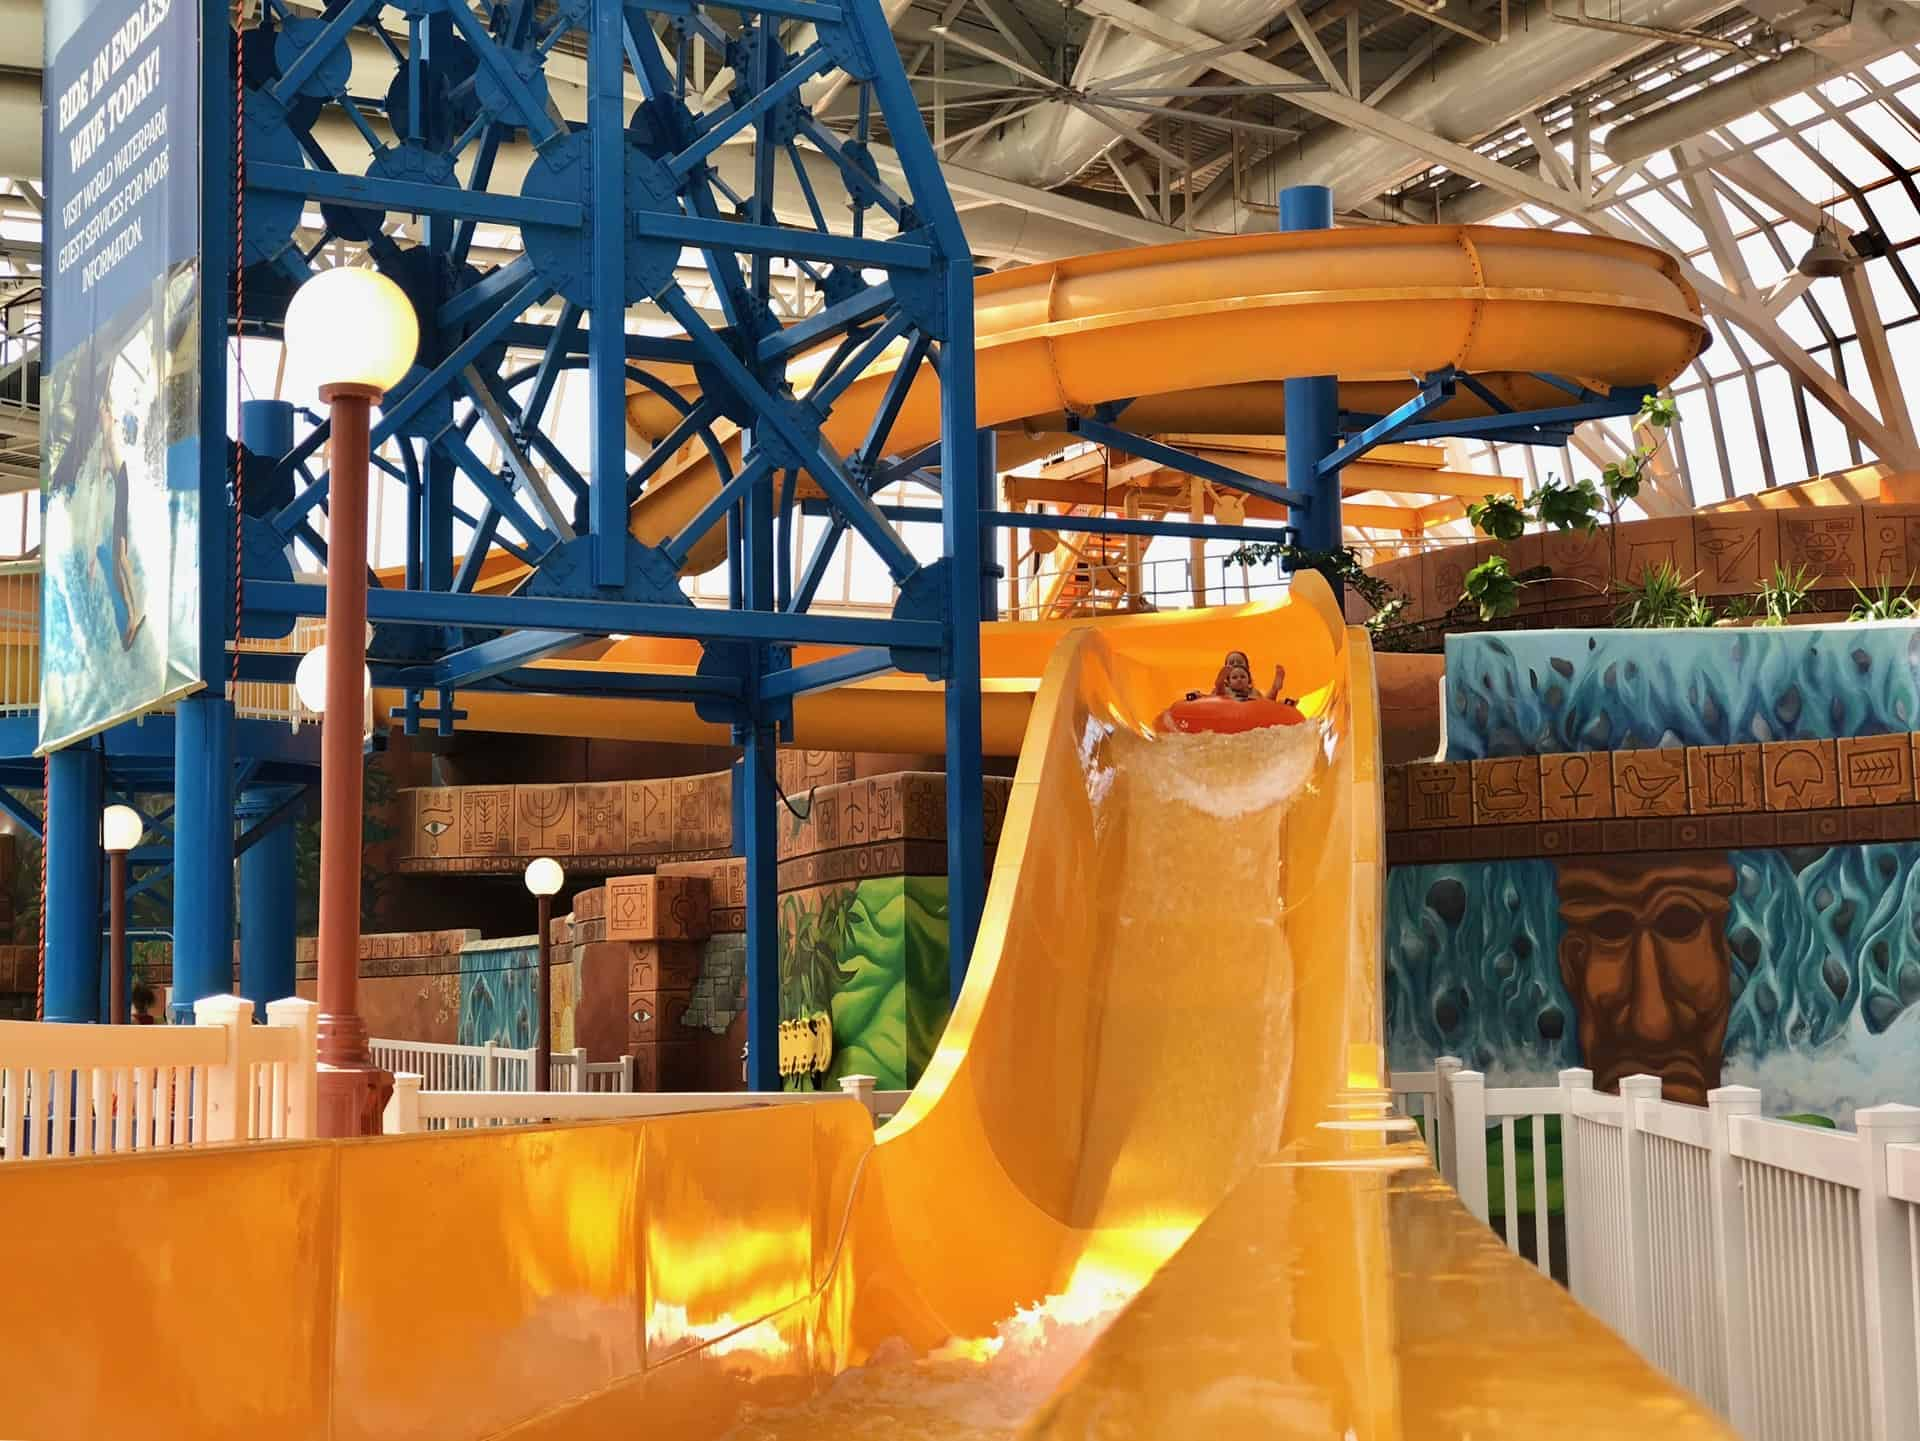 Get a Full Season pass for West Edmonton Mall Toddler Time for $80